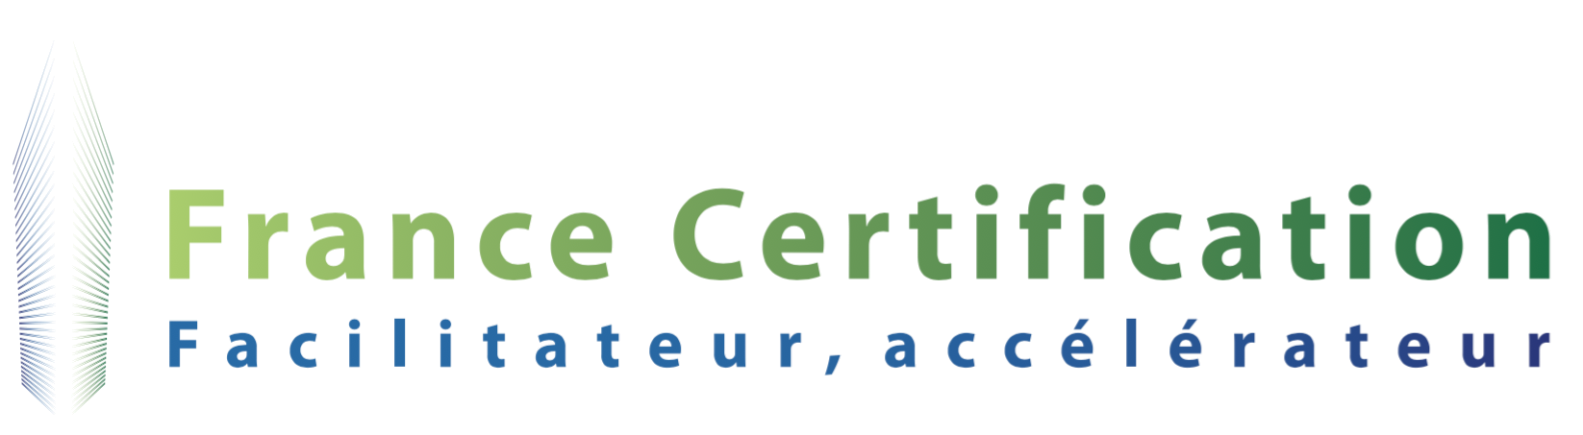 Certification Iso - Formation et accompagnement